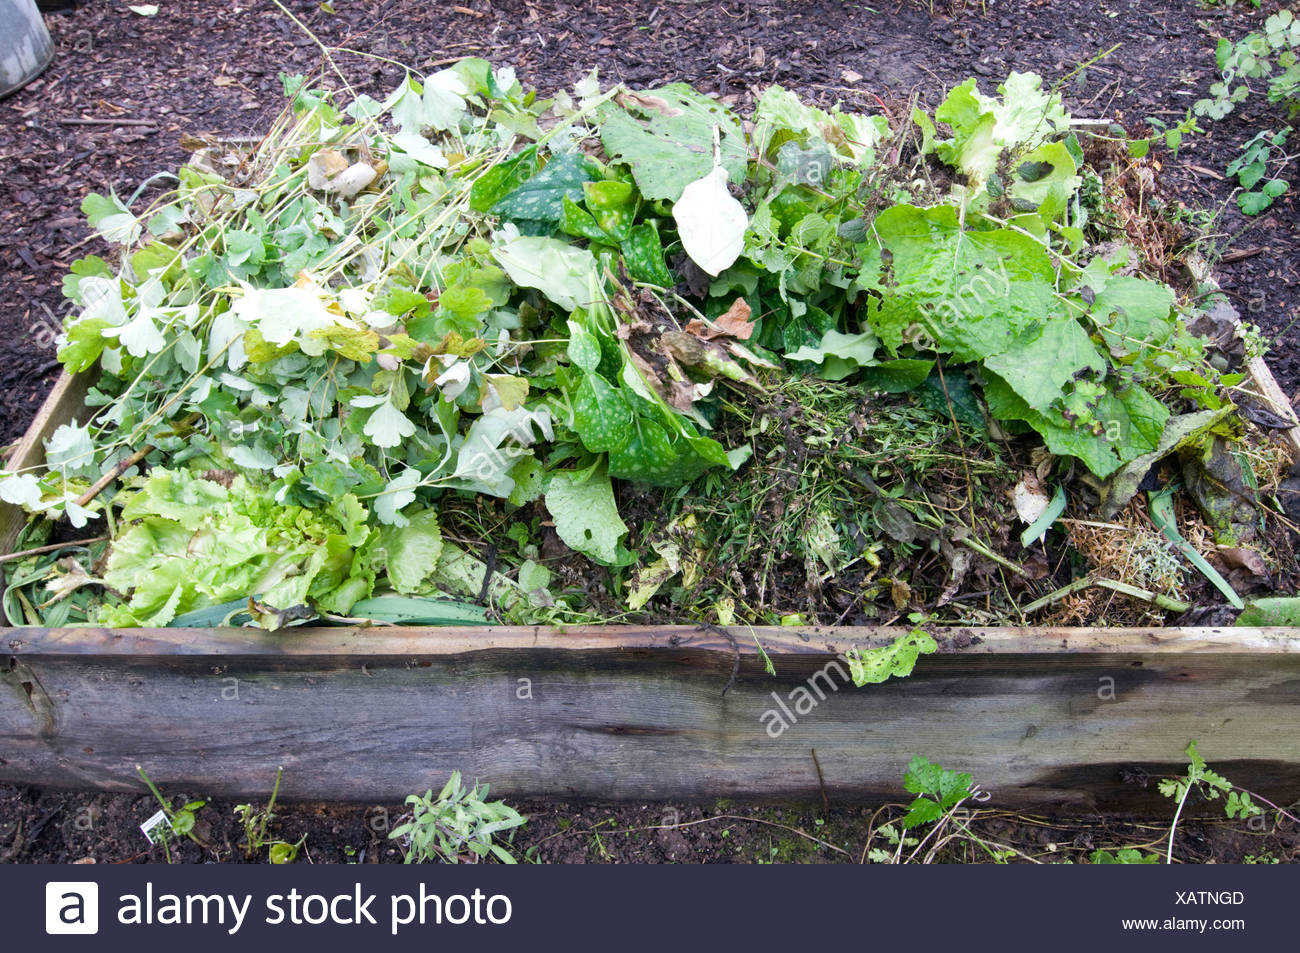 Raised bed - Stock Image